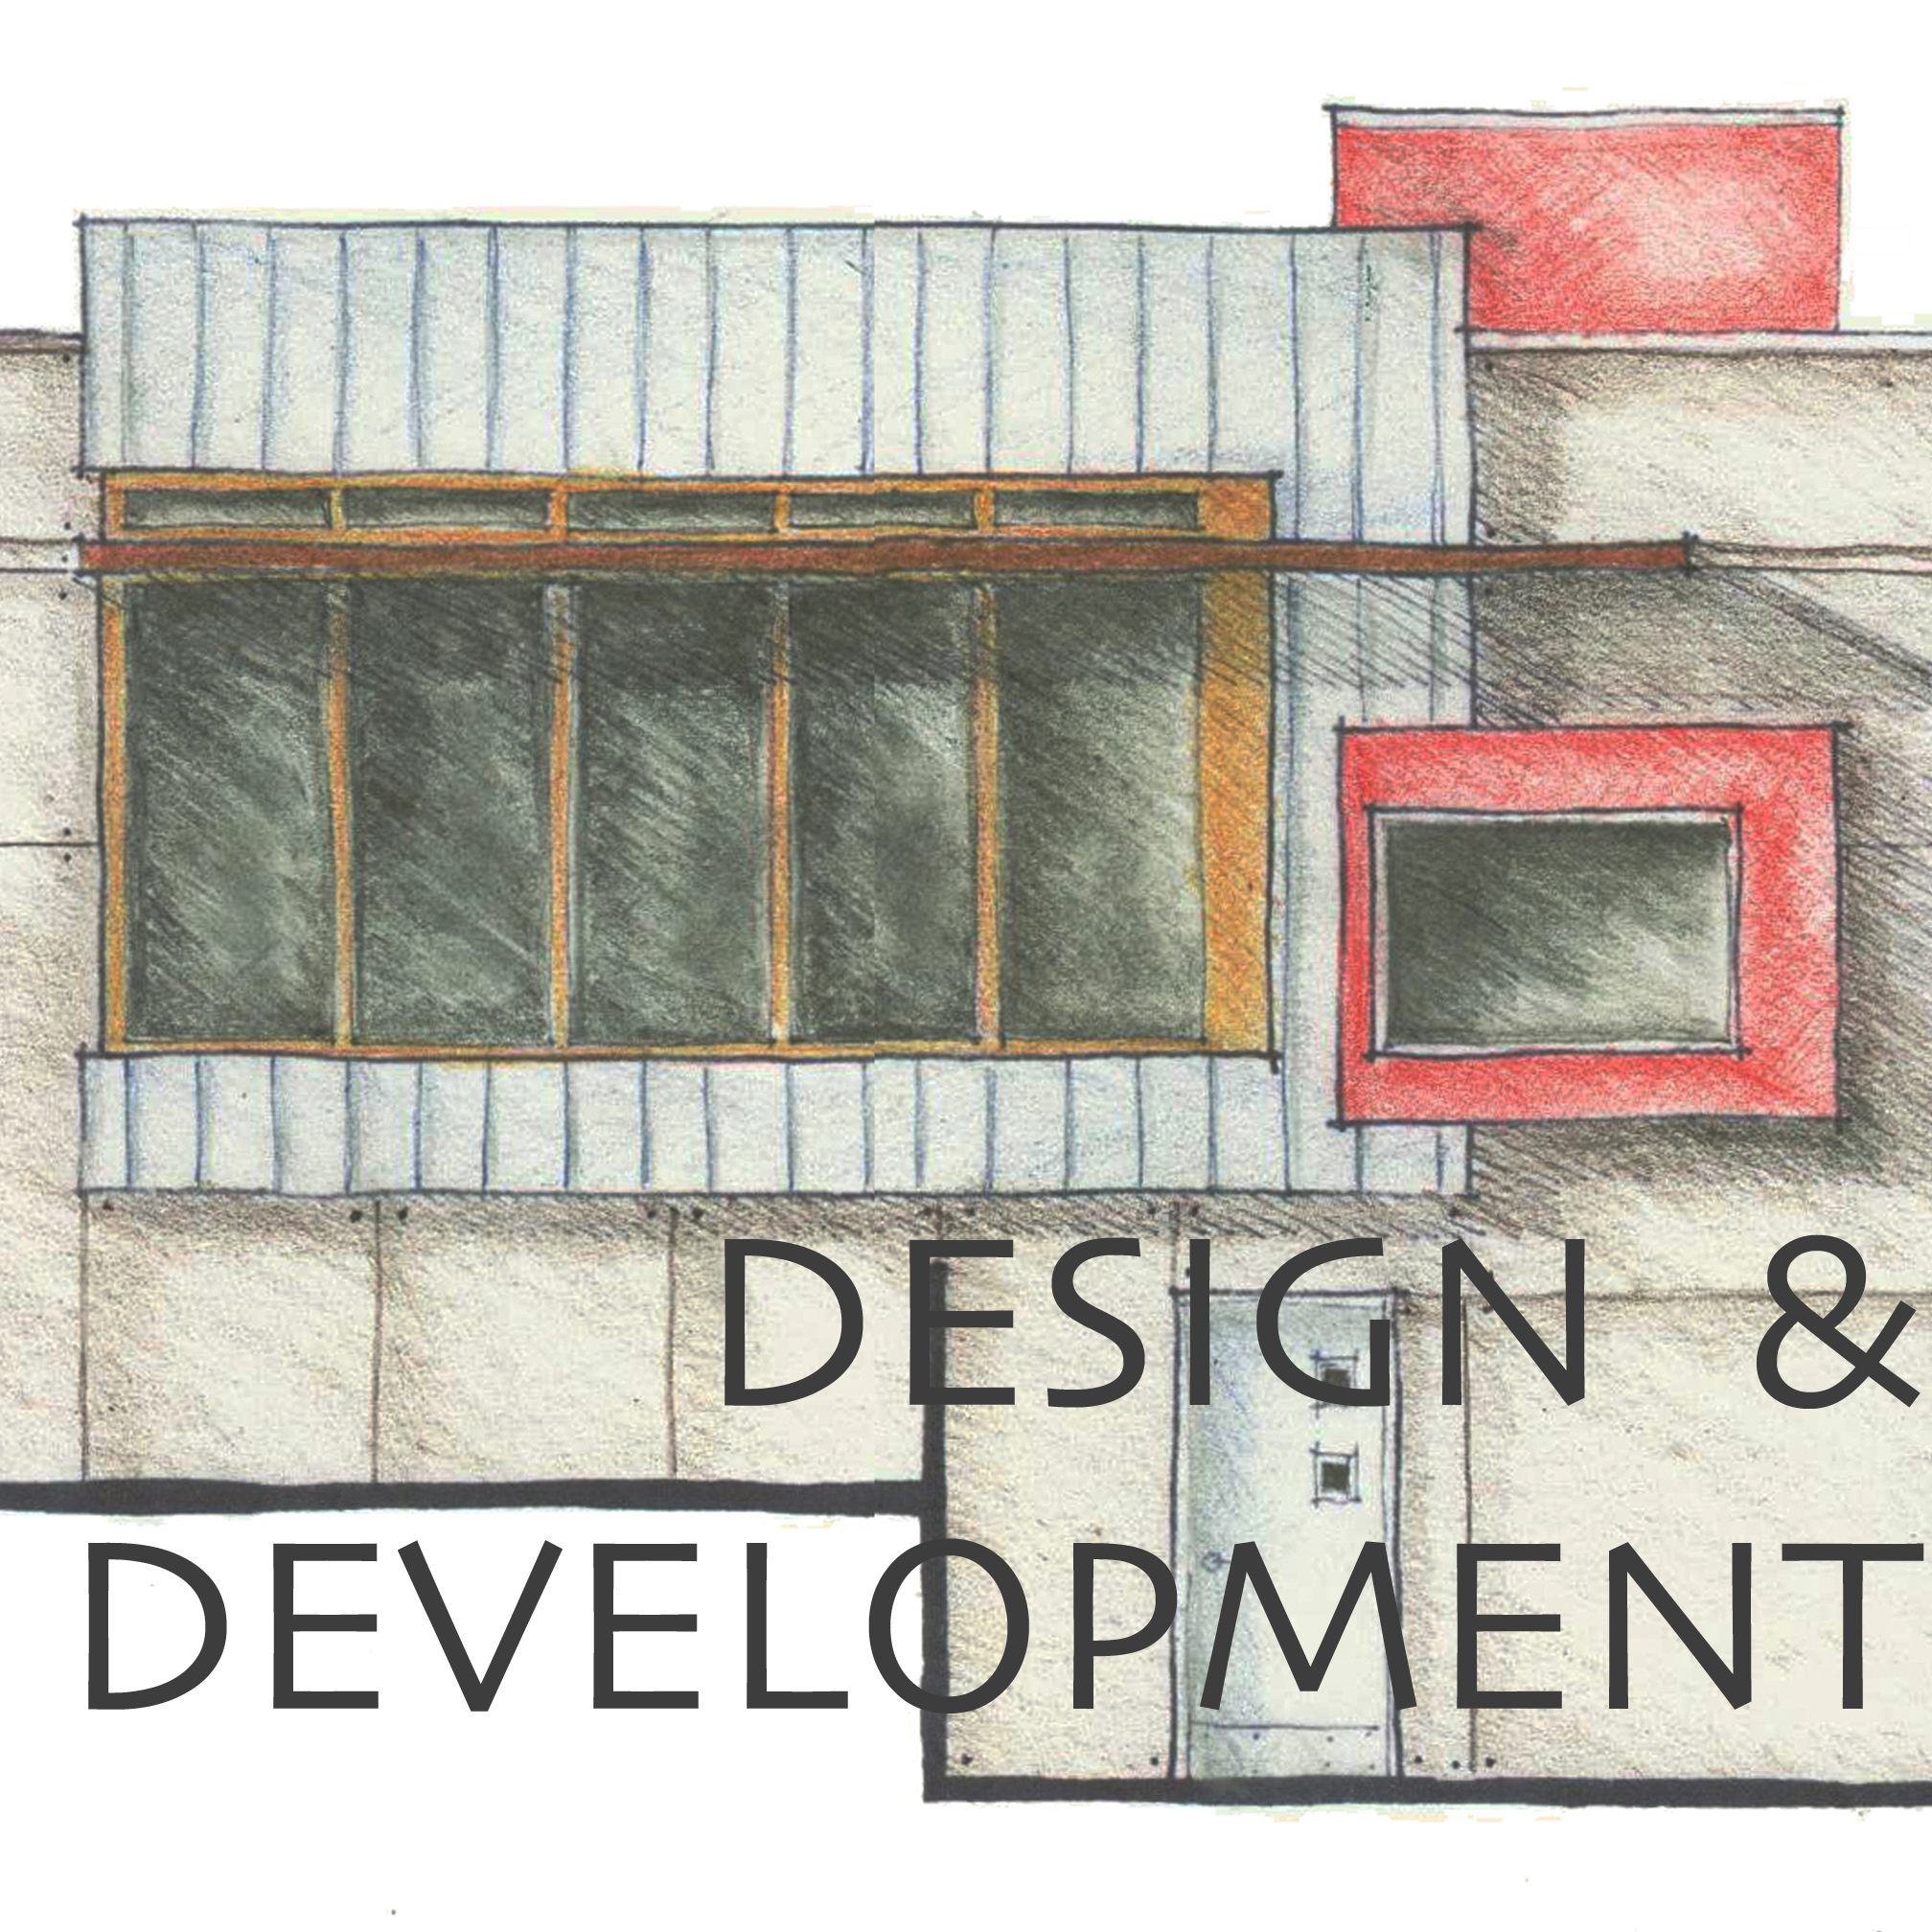 DESIGN AND DEVELOPMENT PIC 4.jpg